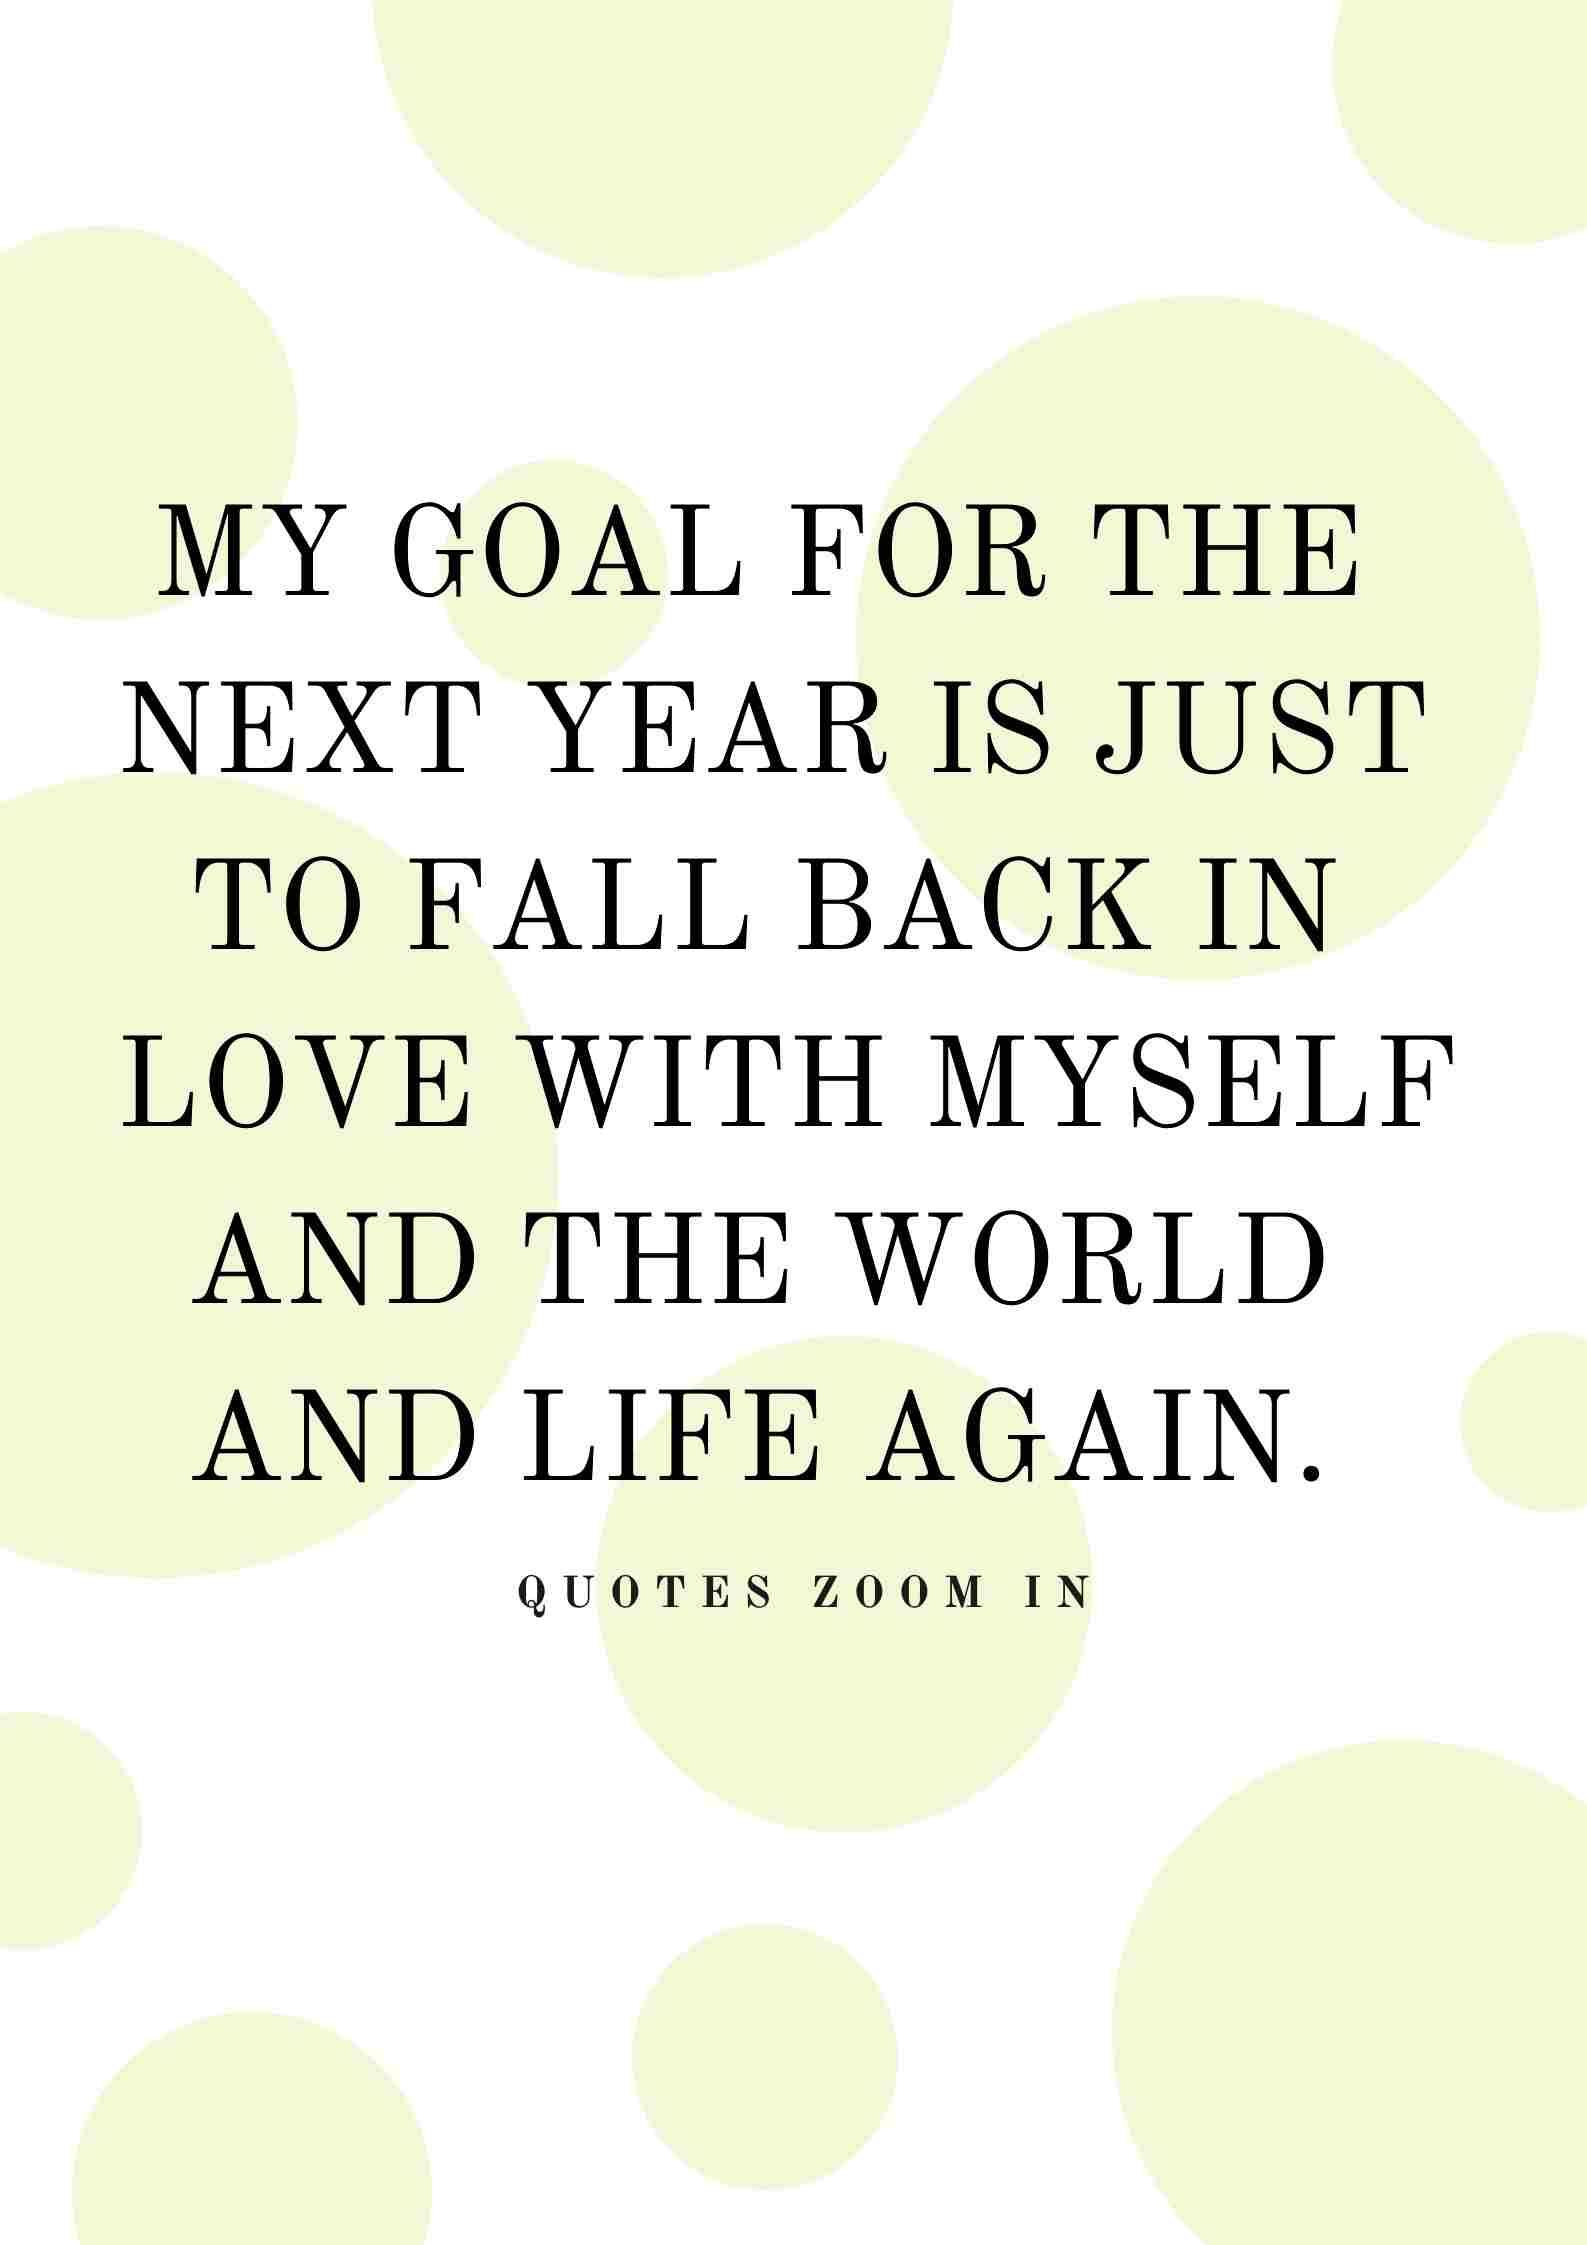 Goals for 2020 quotes resolutions My goal for the next